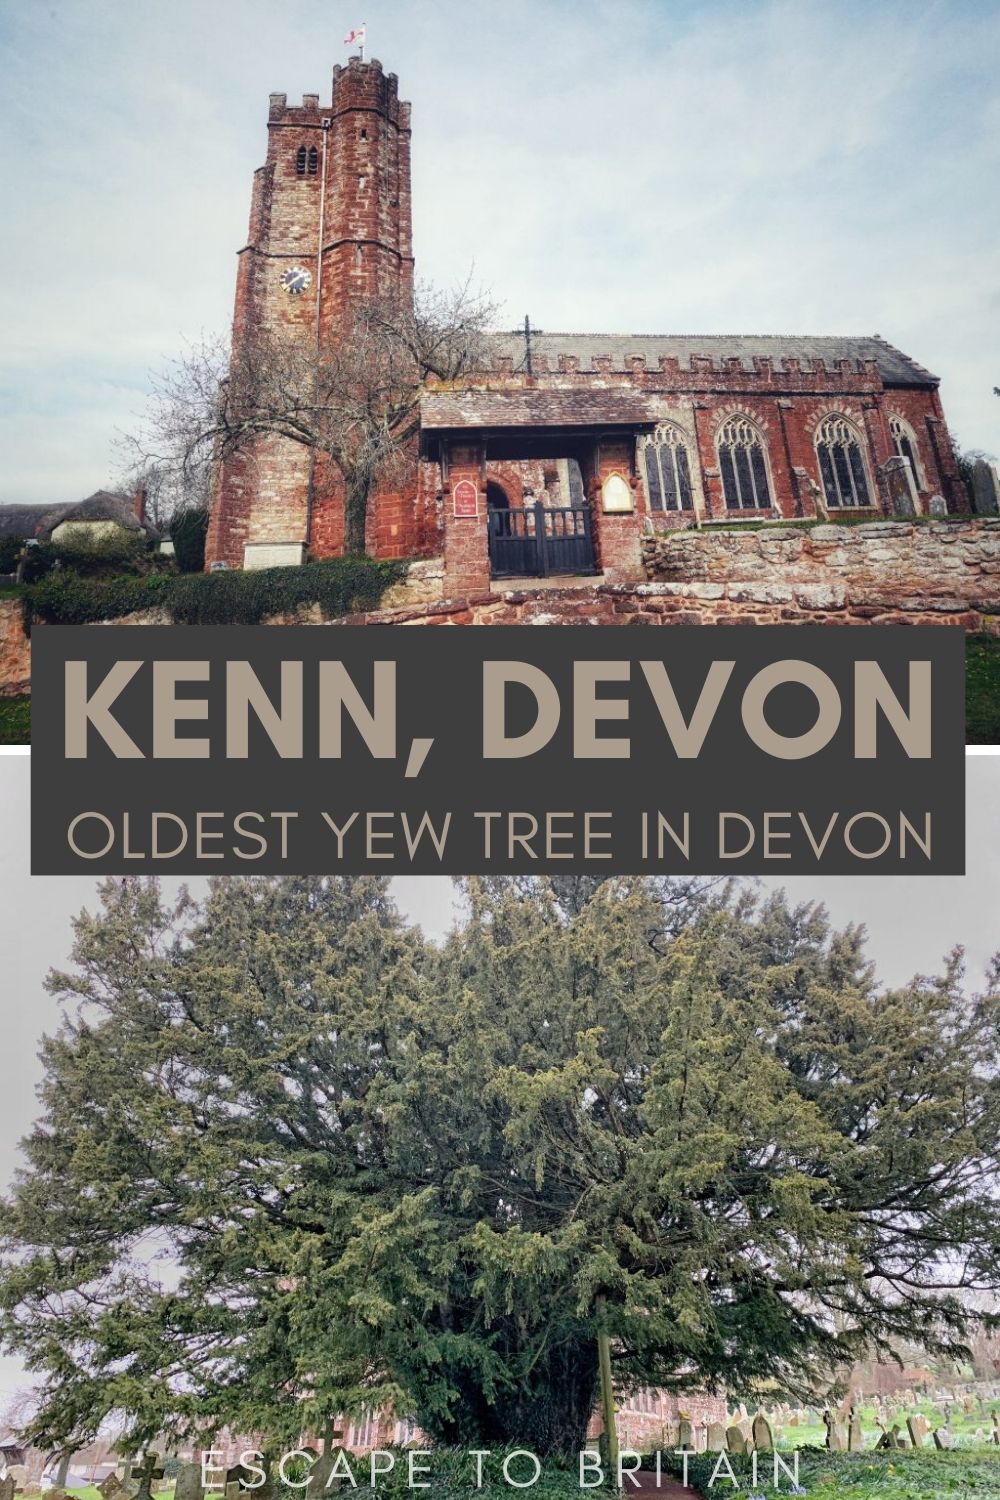 This Churchyard in Devon is home to one of the oldest Yew Trees in Britain/ Kenn, Exeter, Devon, England